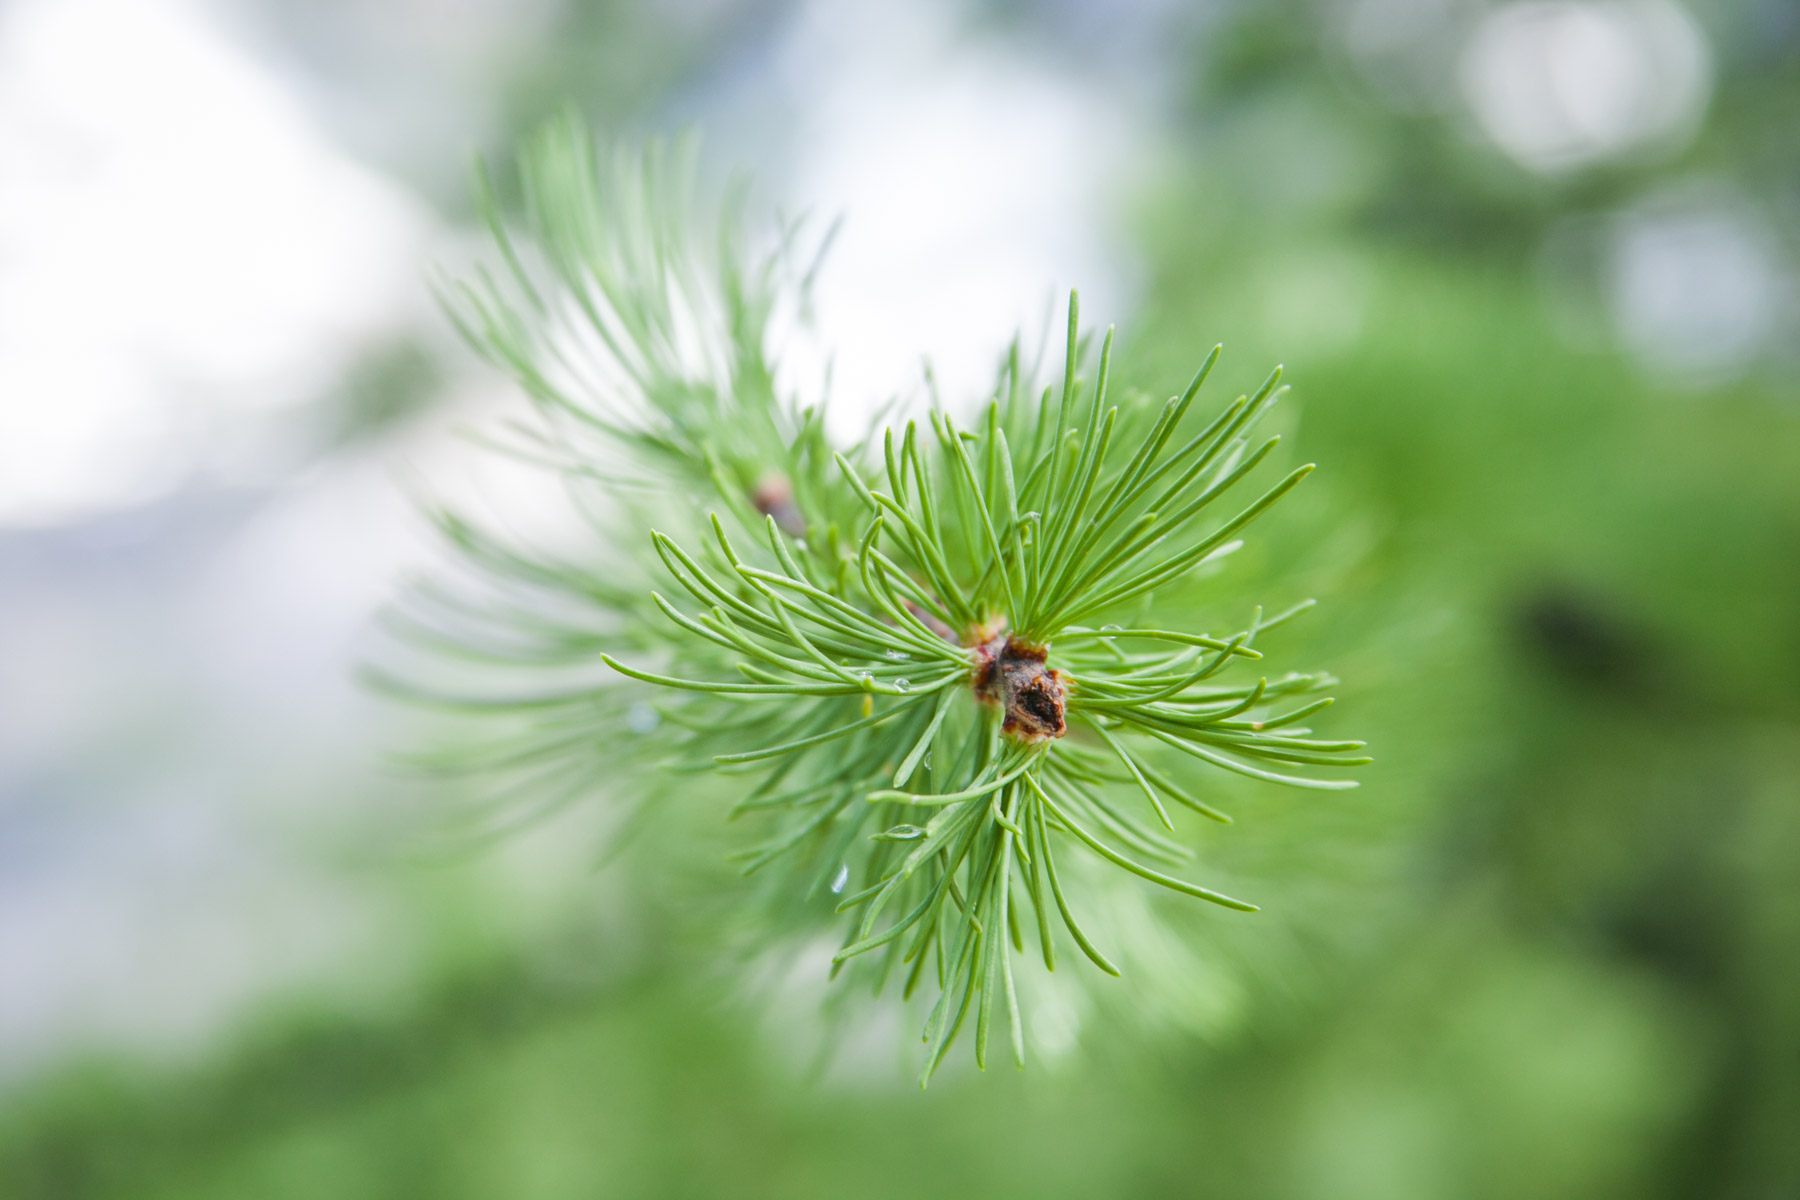 Up close and personal on a pine tree